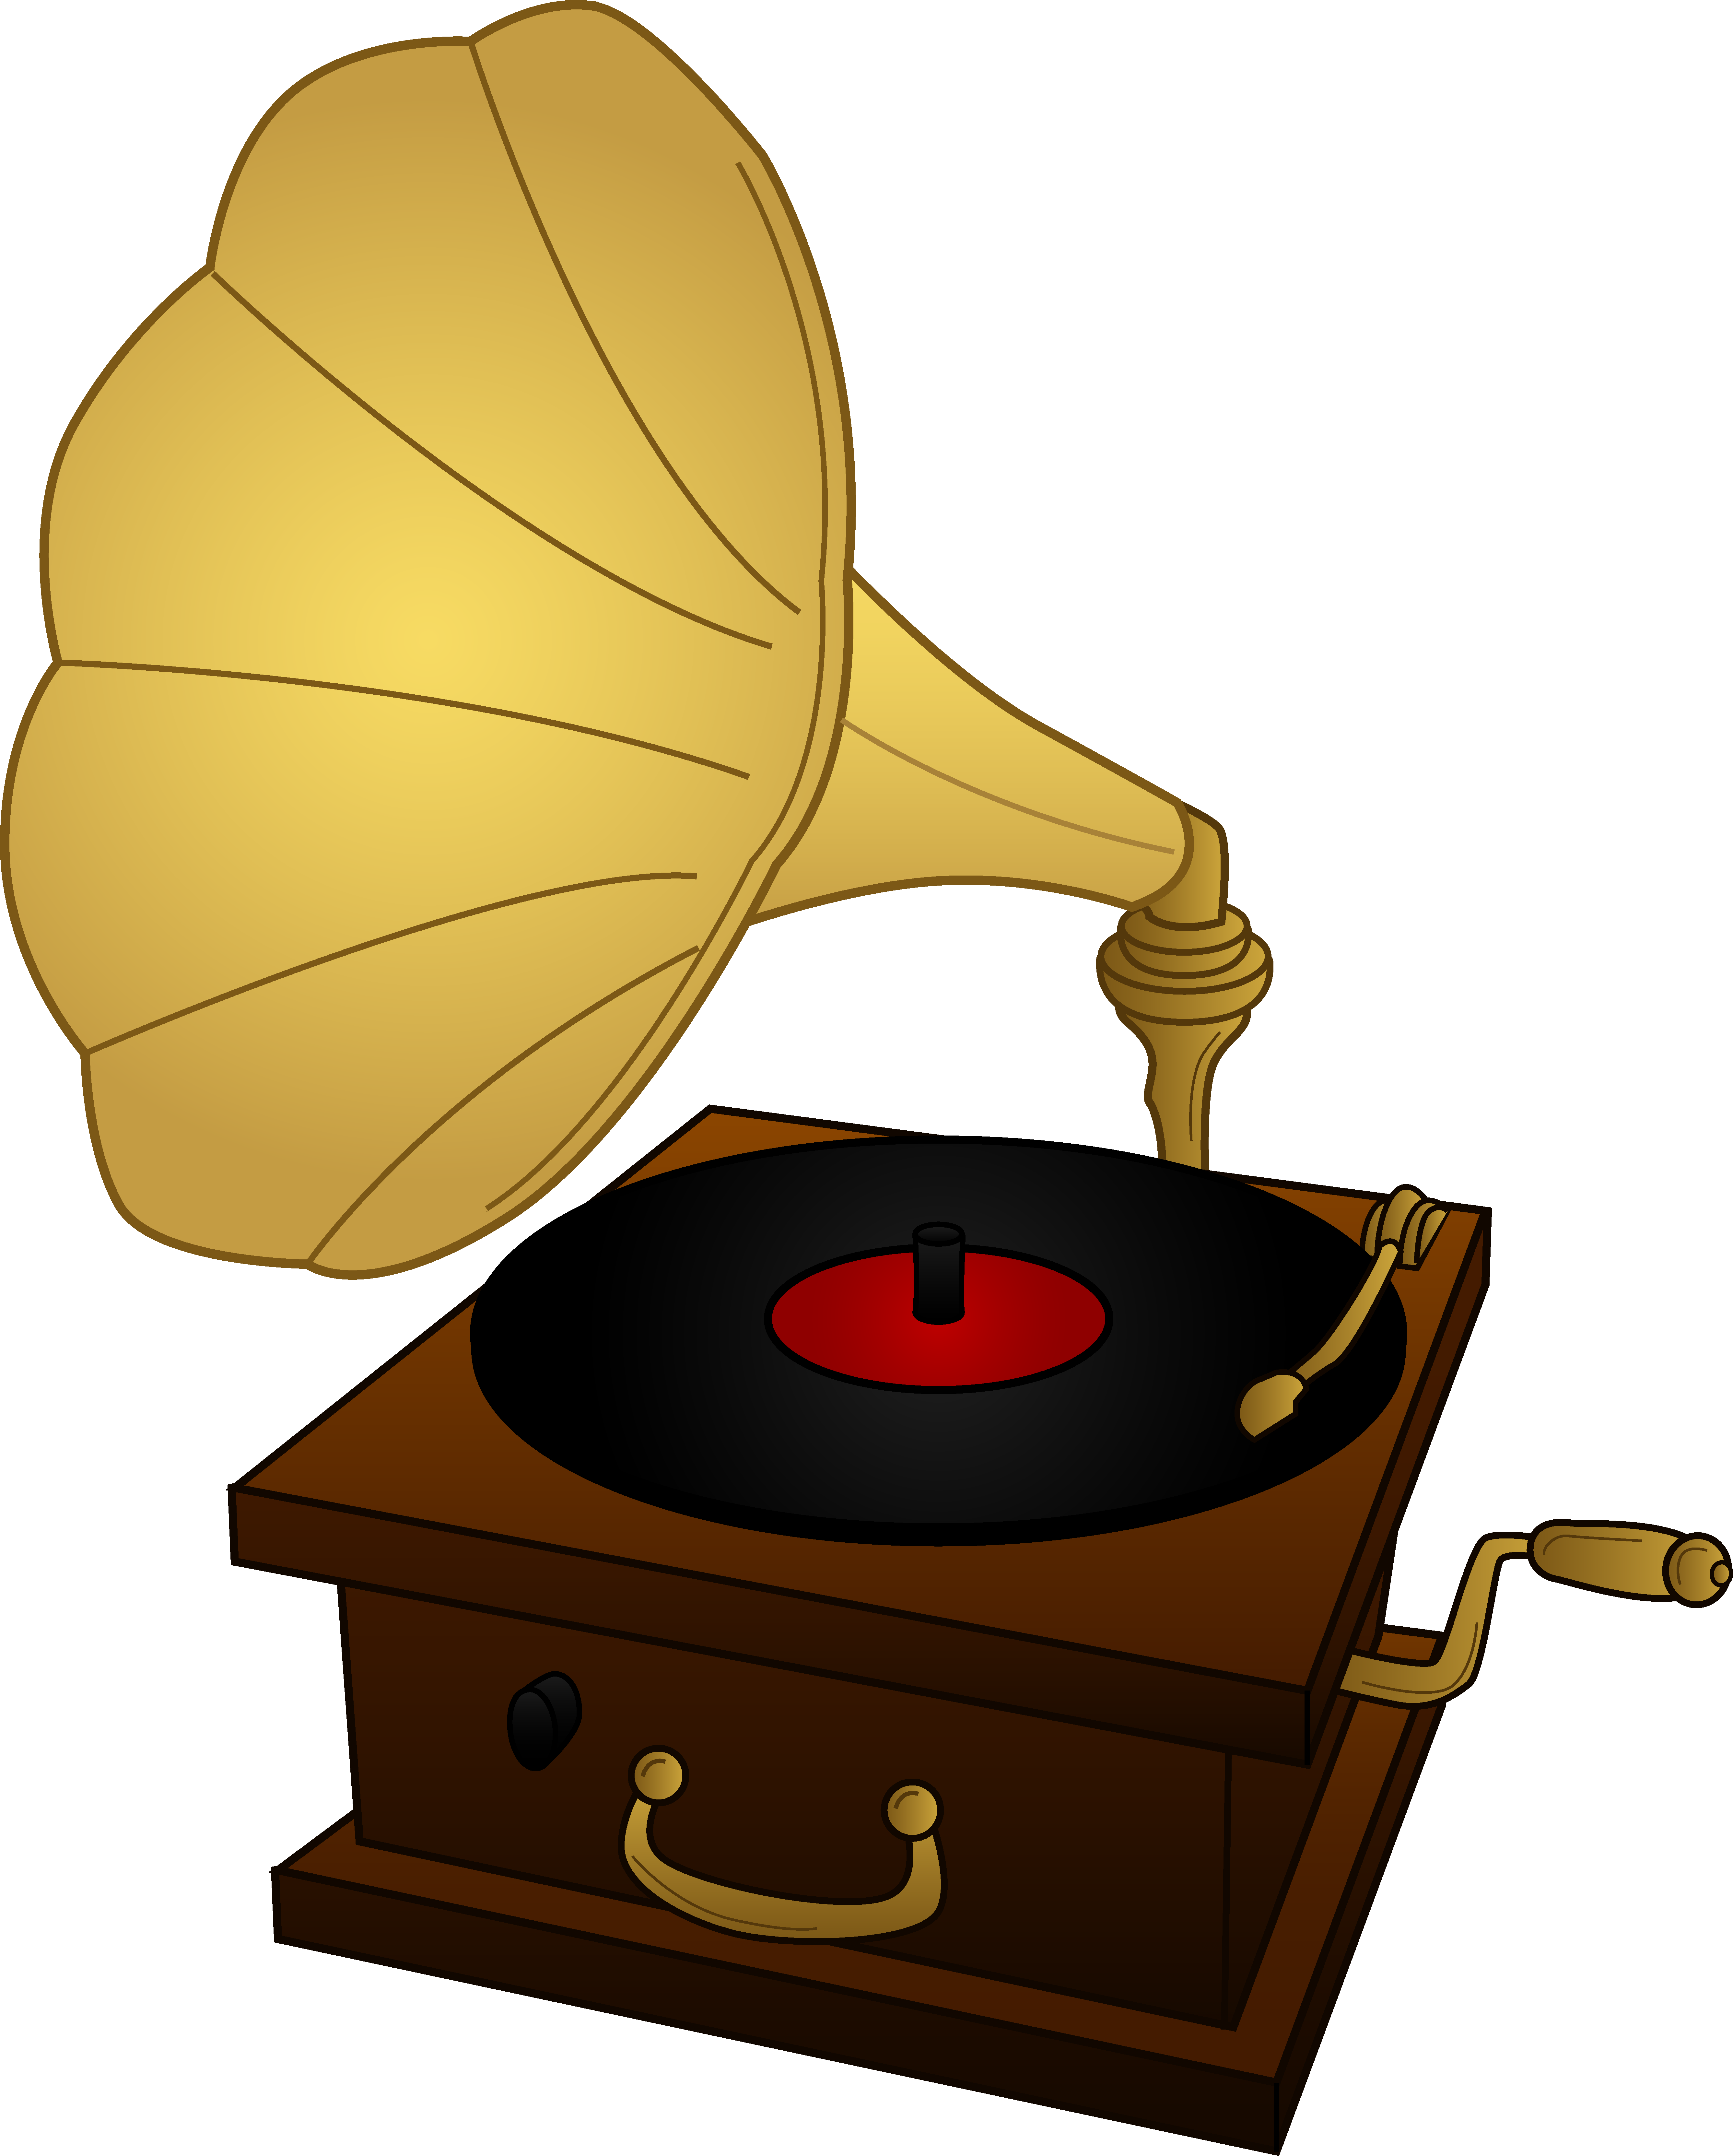 Clipart volleyball vintage. Old record player drawing